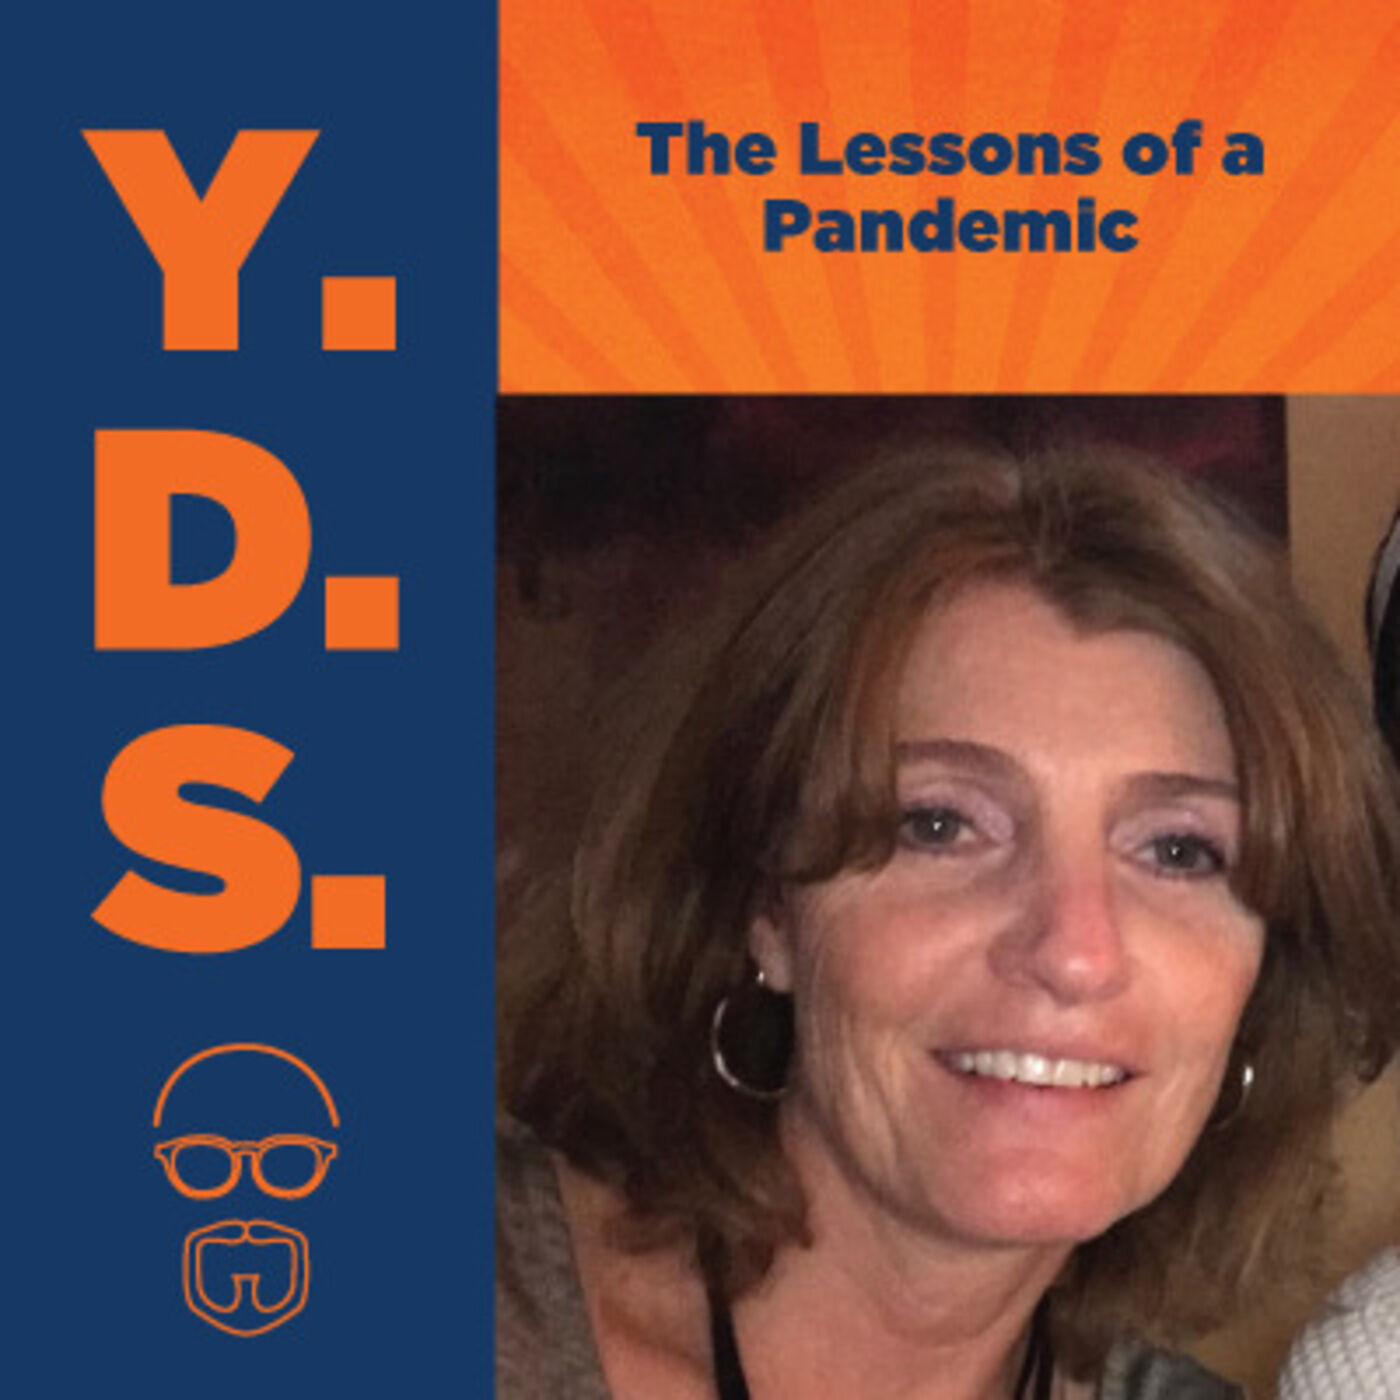 Ep. 20 – The Lessons of a Pandemic